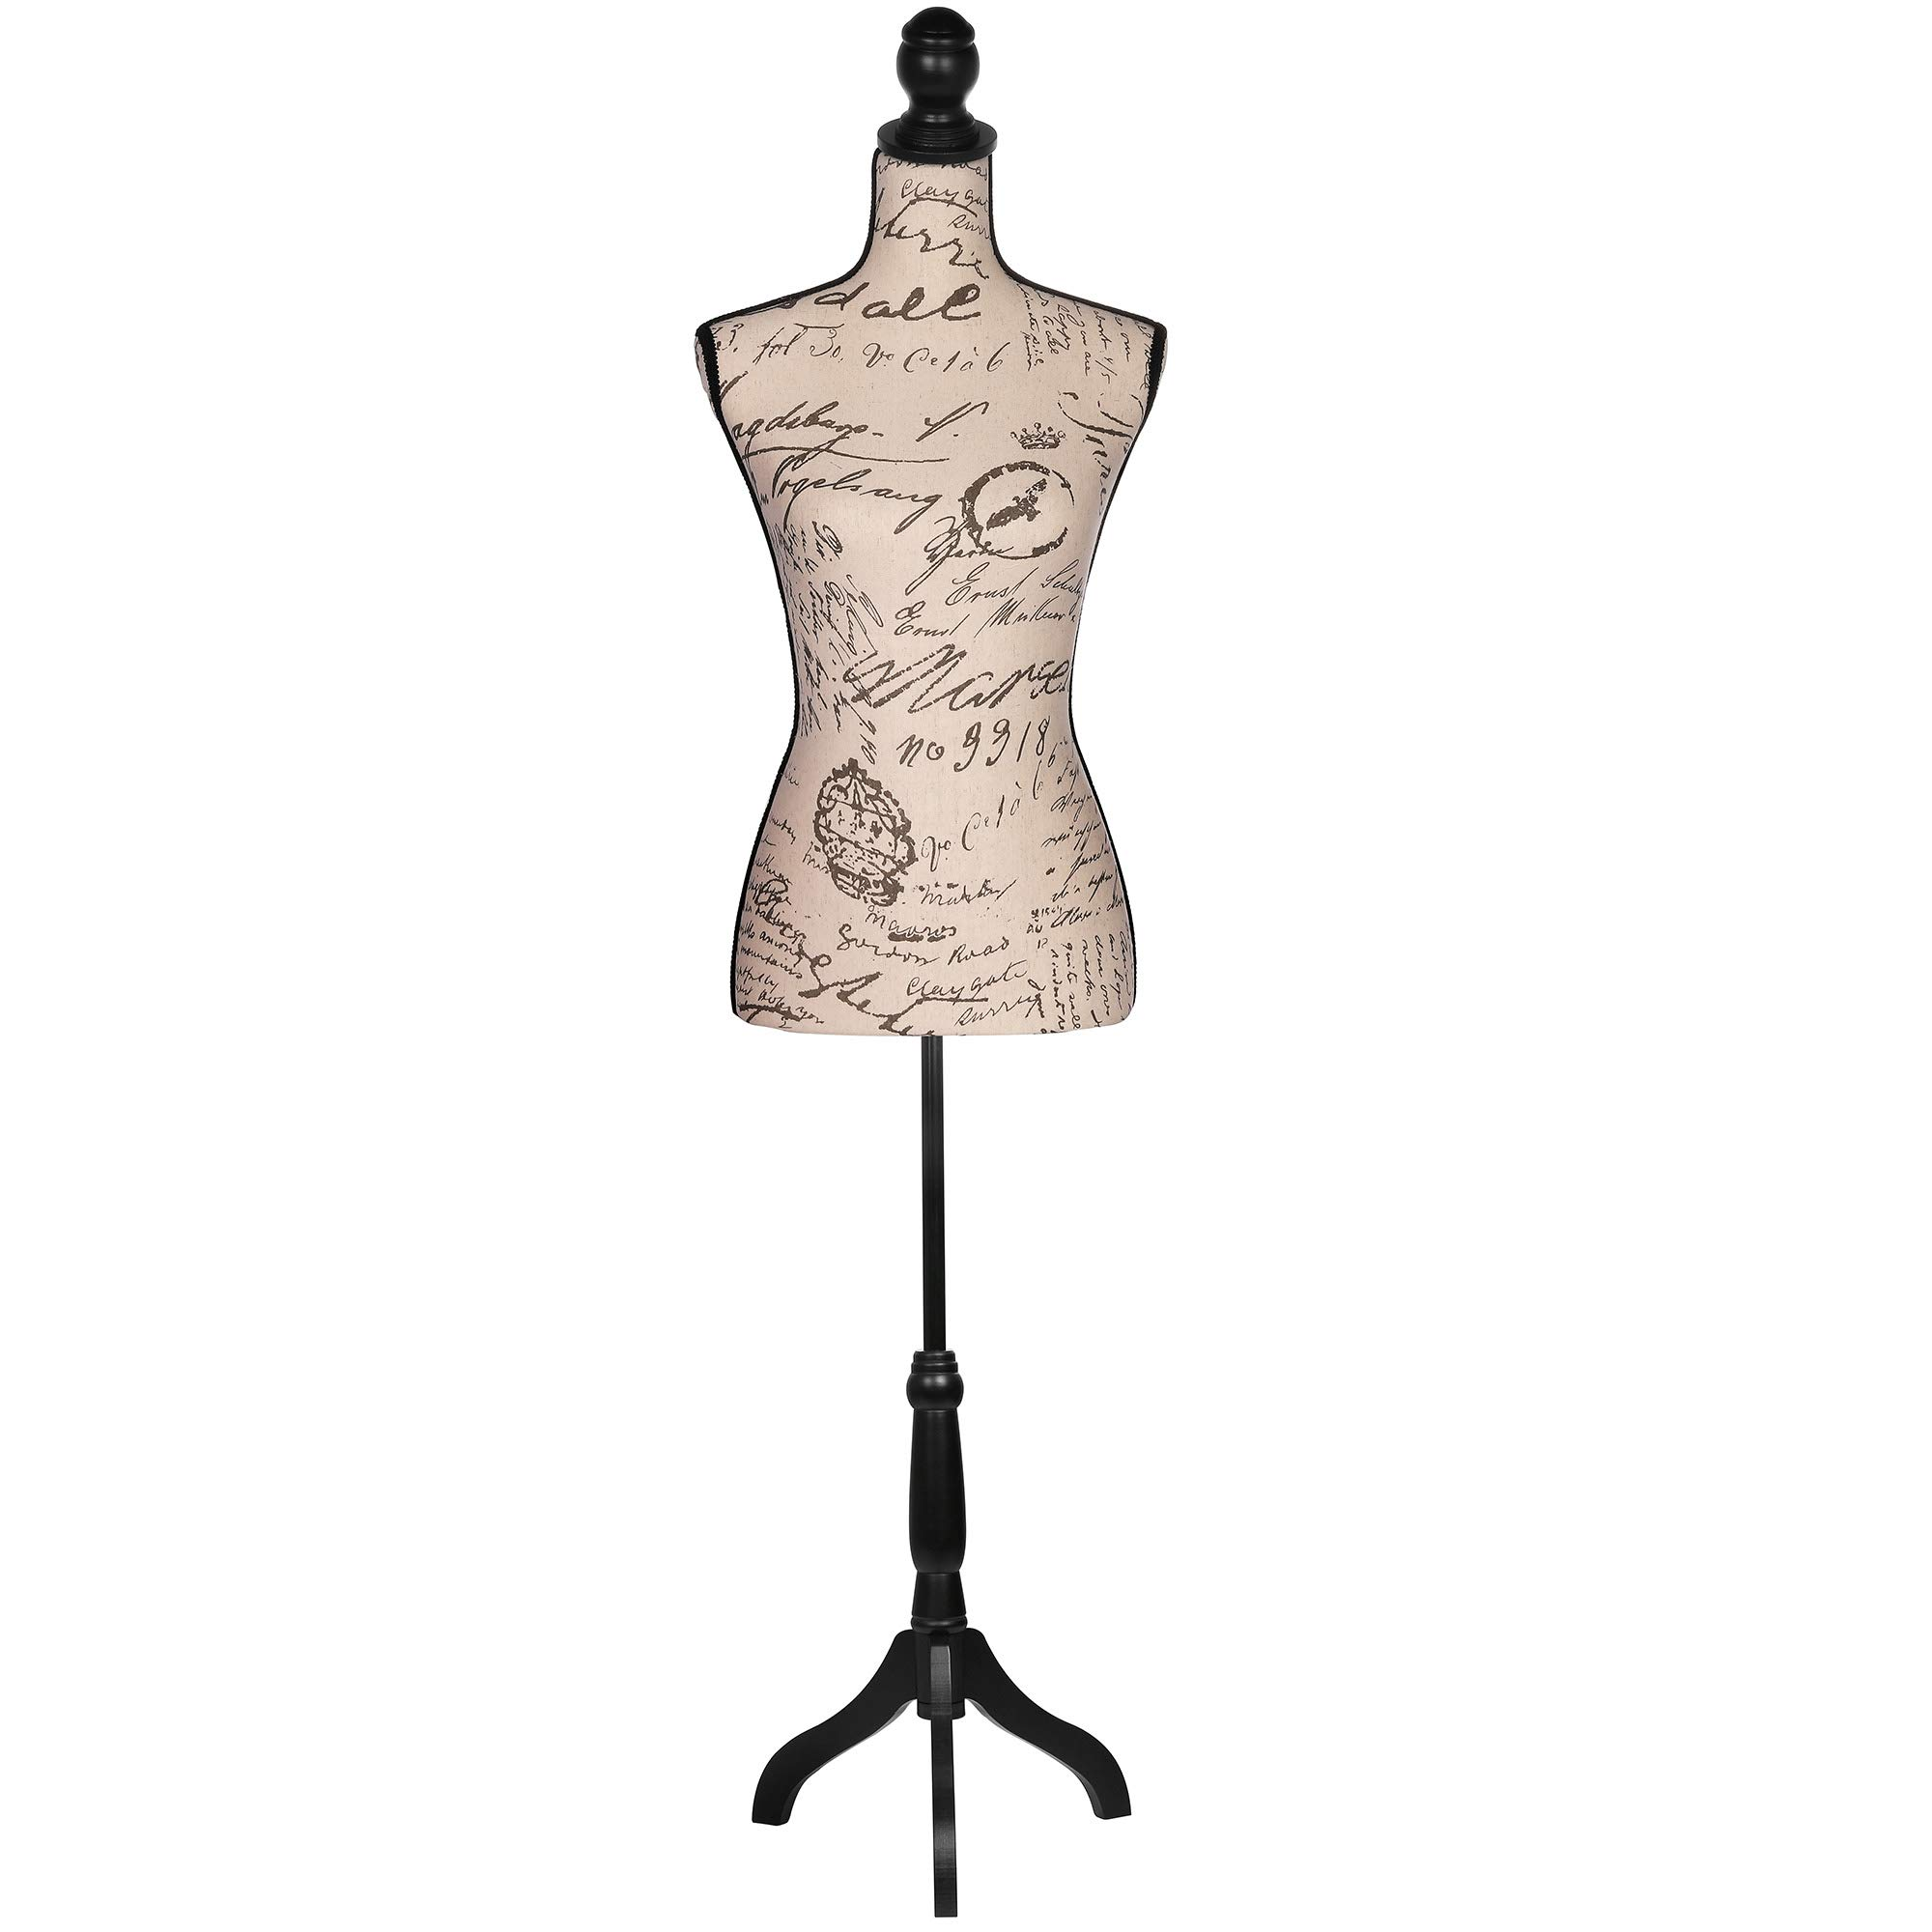 Female Dress Form Mannequin Adjustable Height Black Tripod Stand Woman Body Torso Dress Jewelry Display - Beige Printing by Grande Juguete